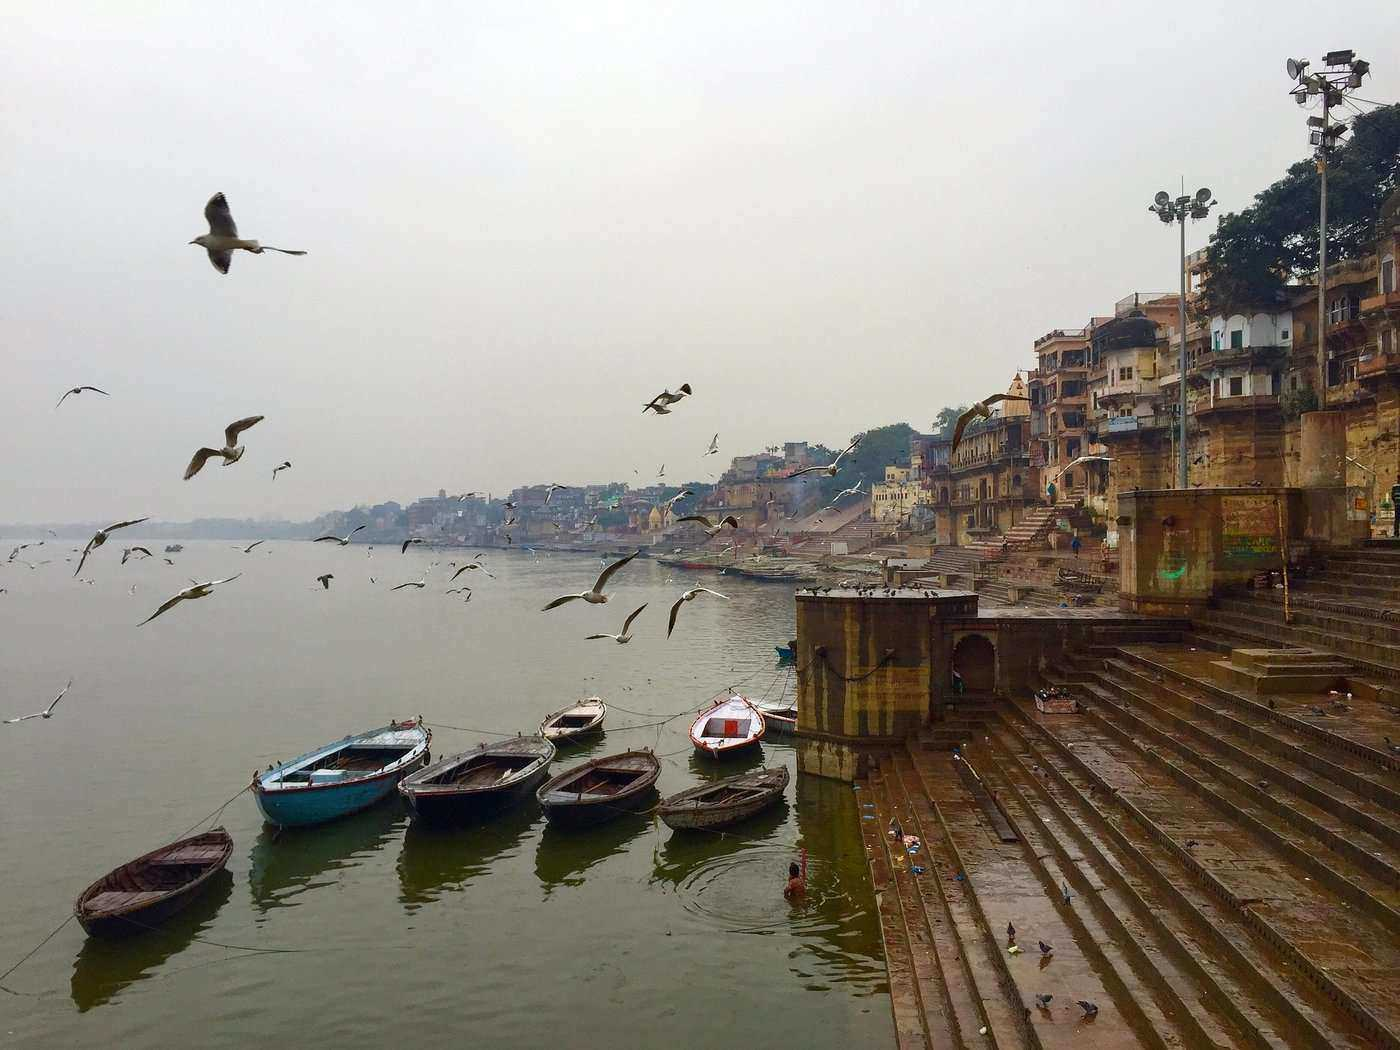 varanasi - 8 safest cities in india to travel